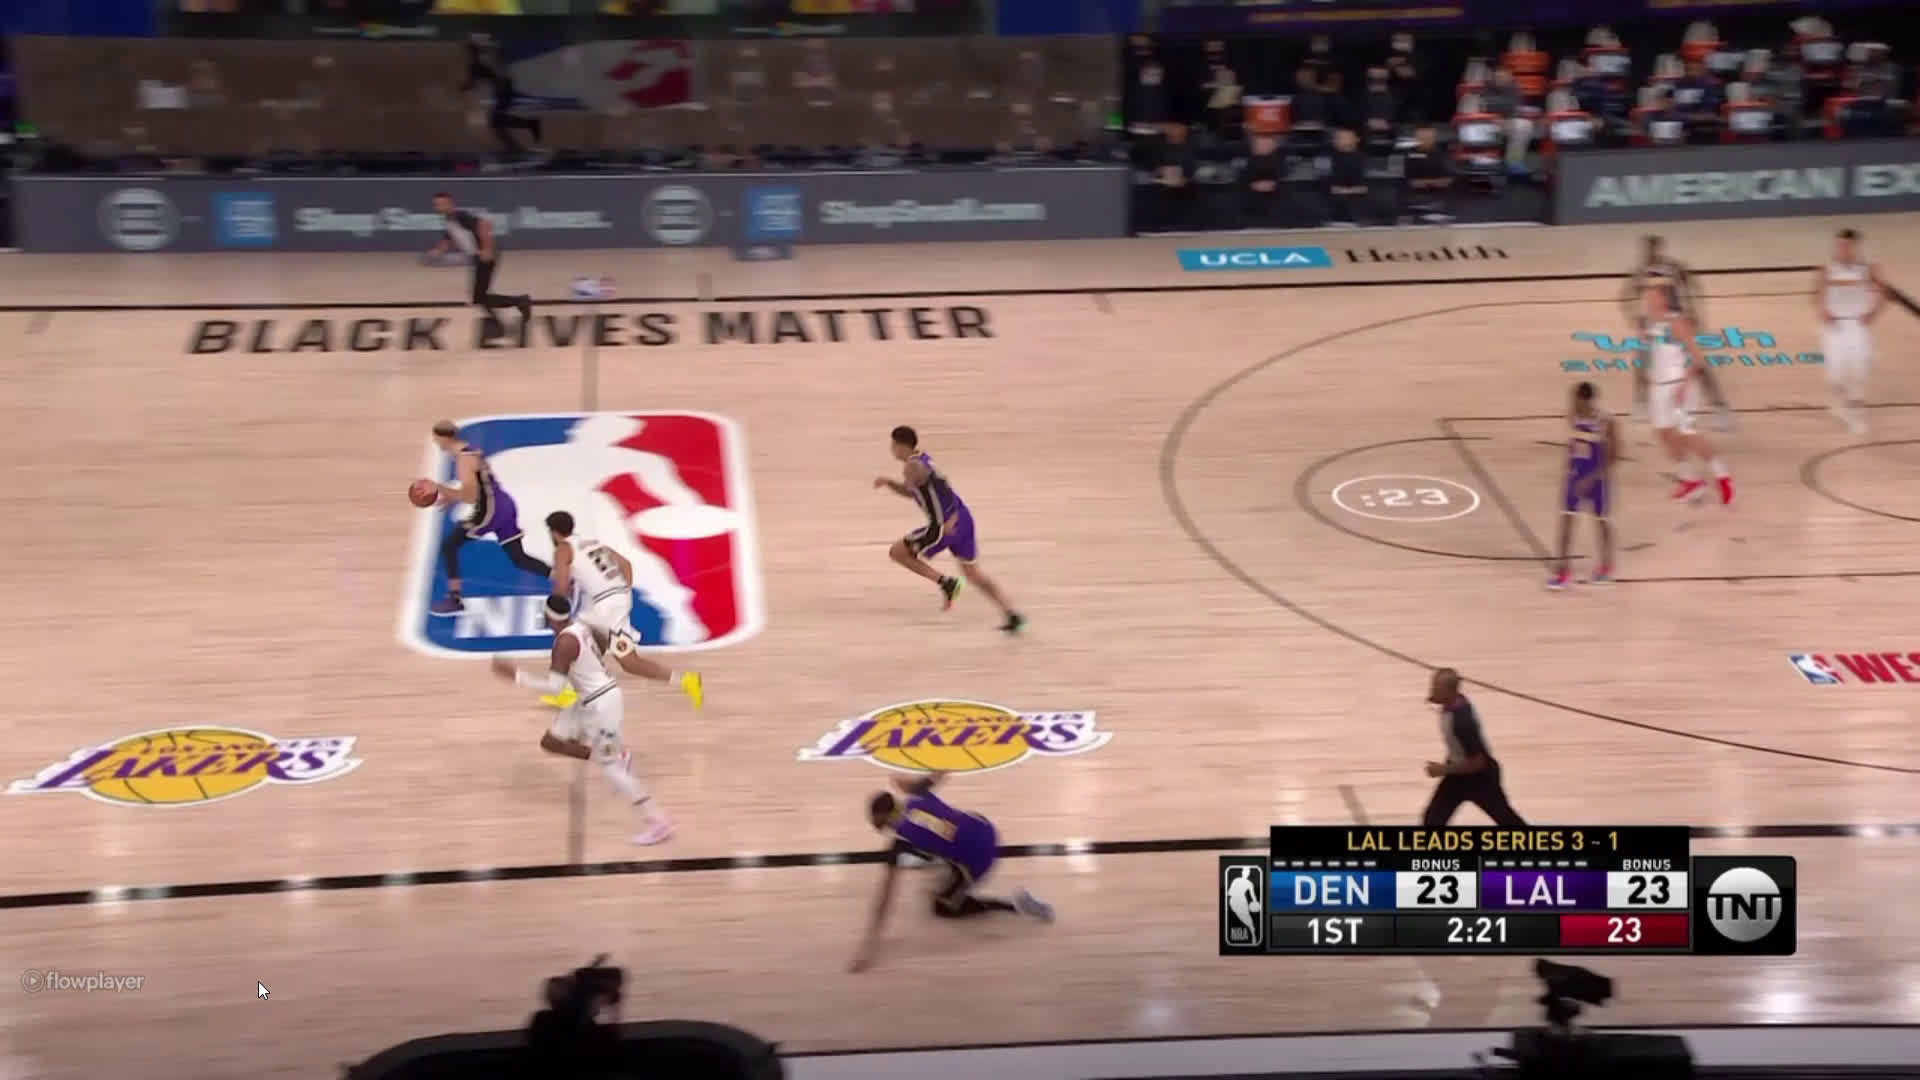 [Highlight] Caruso throws it down